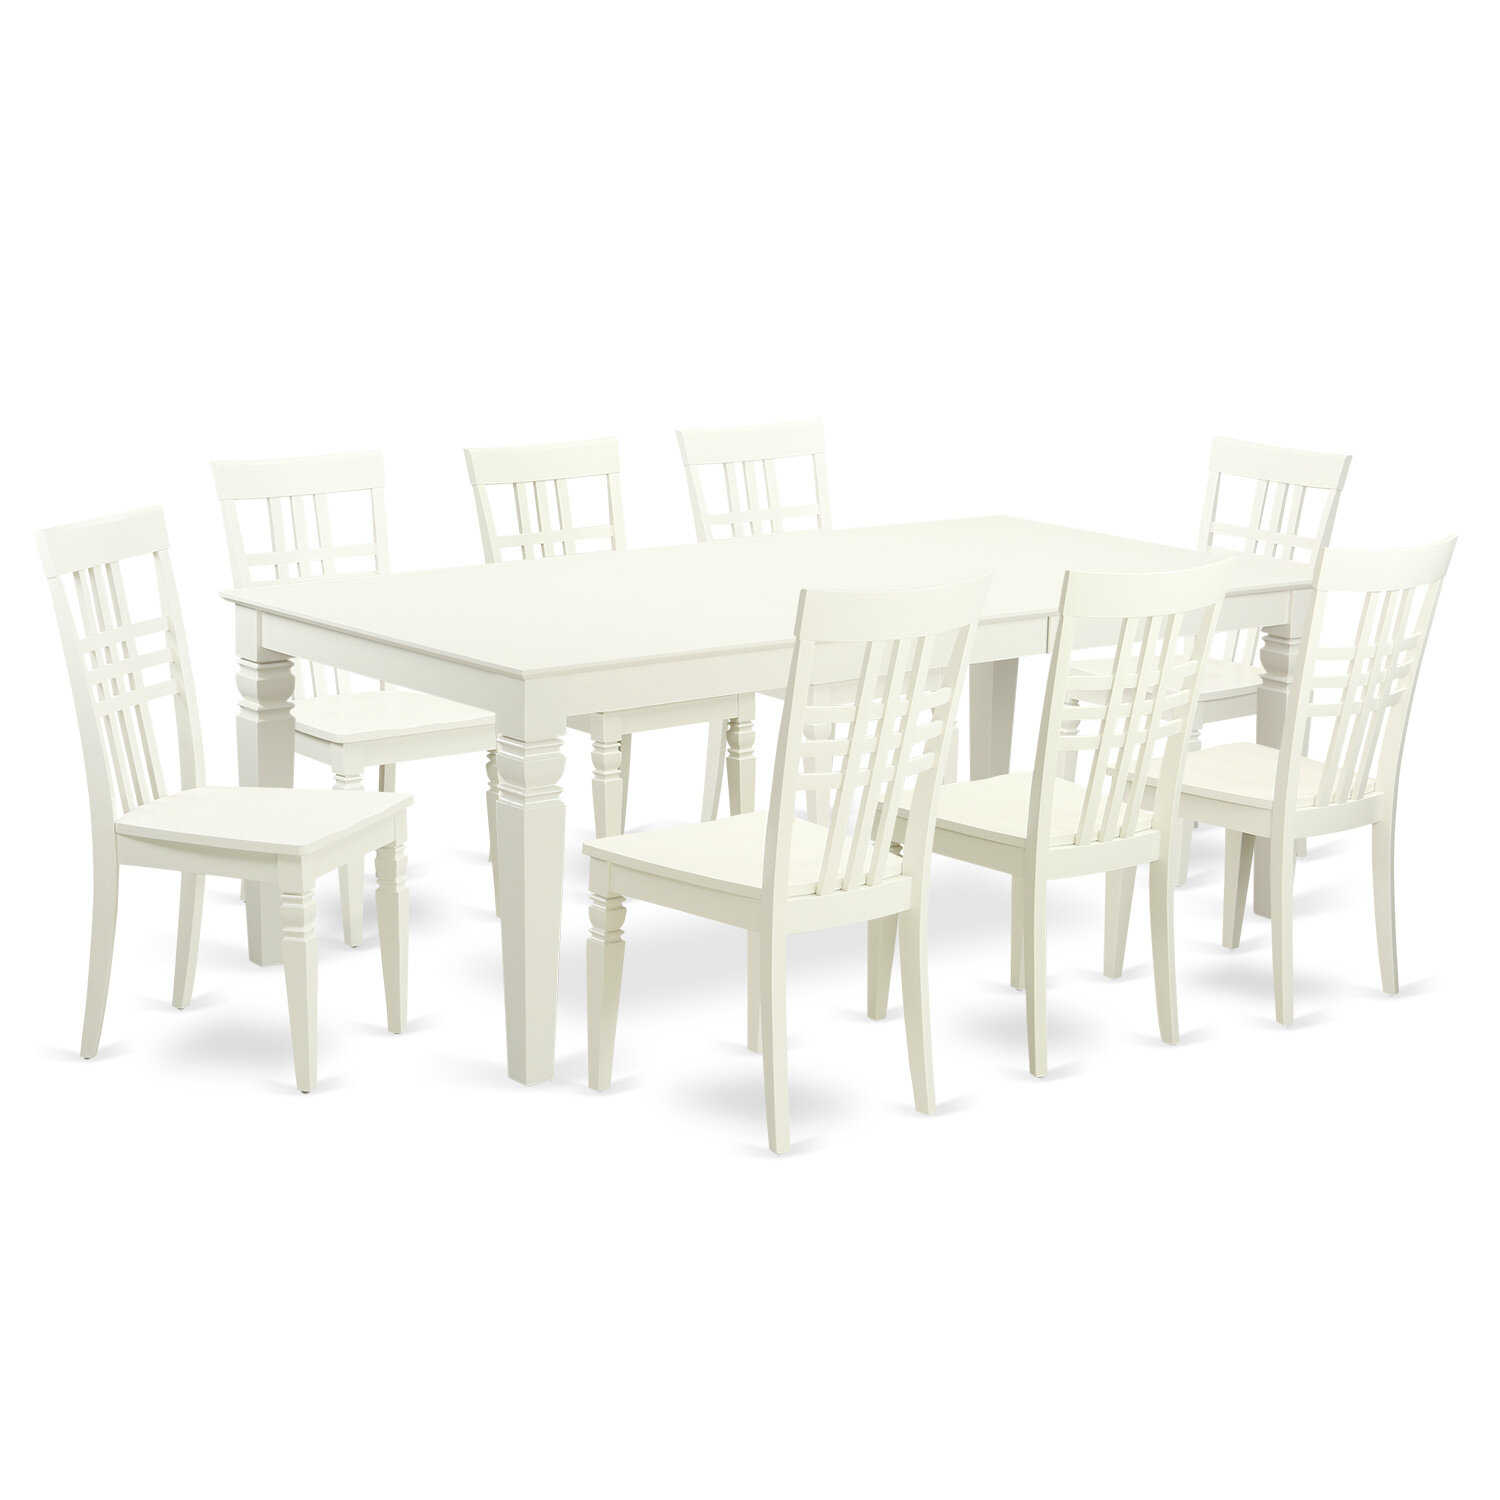 Beau Darby Home Co Beesley 9 Piece Linen White Wood Dining Set | Wayfair